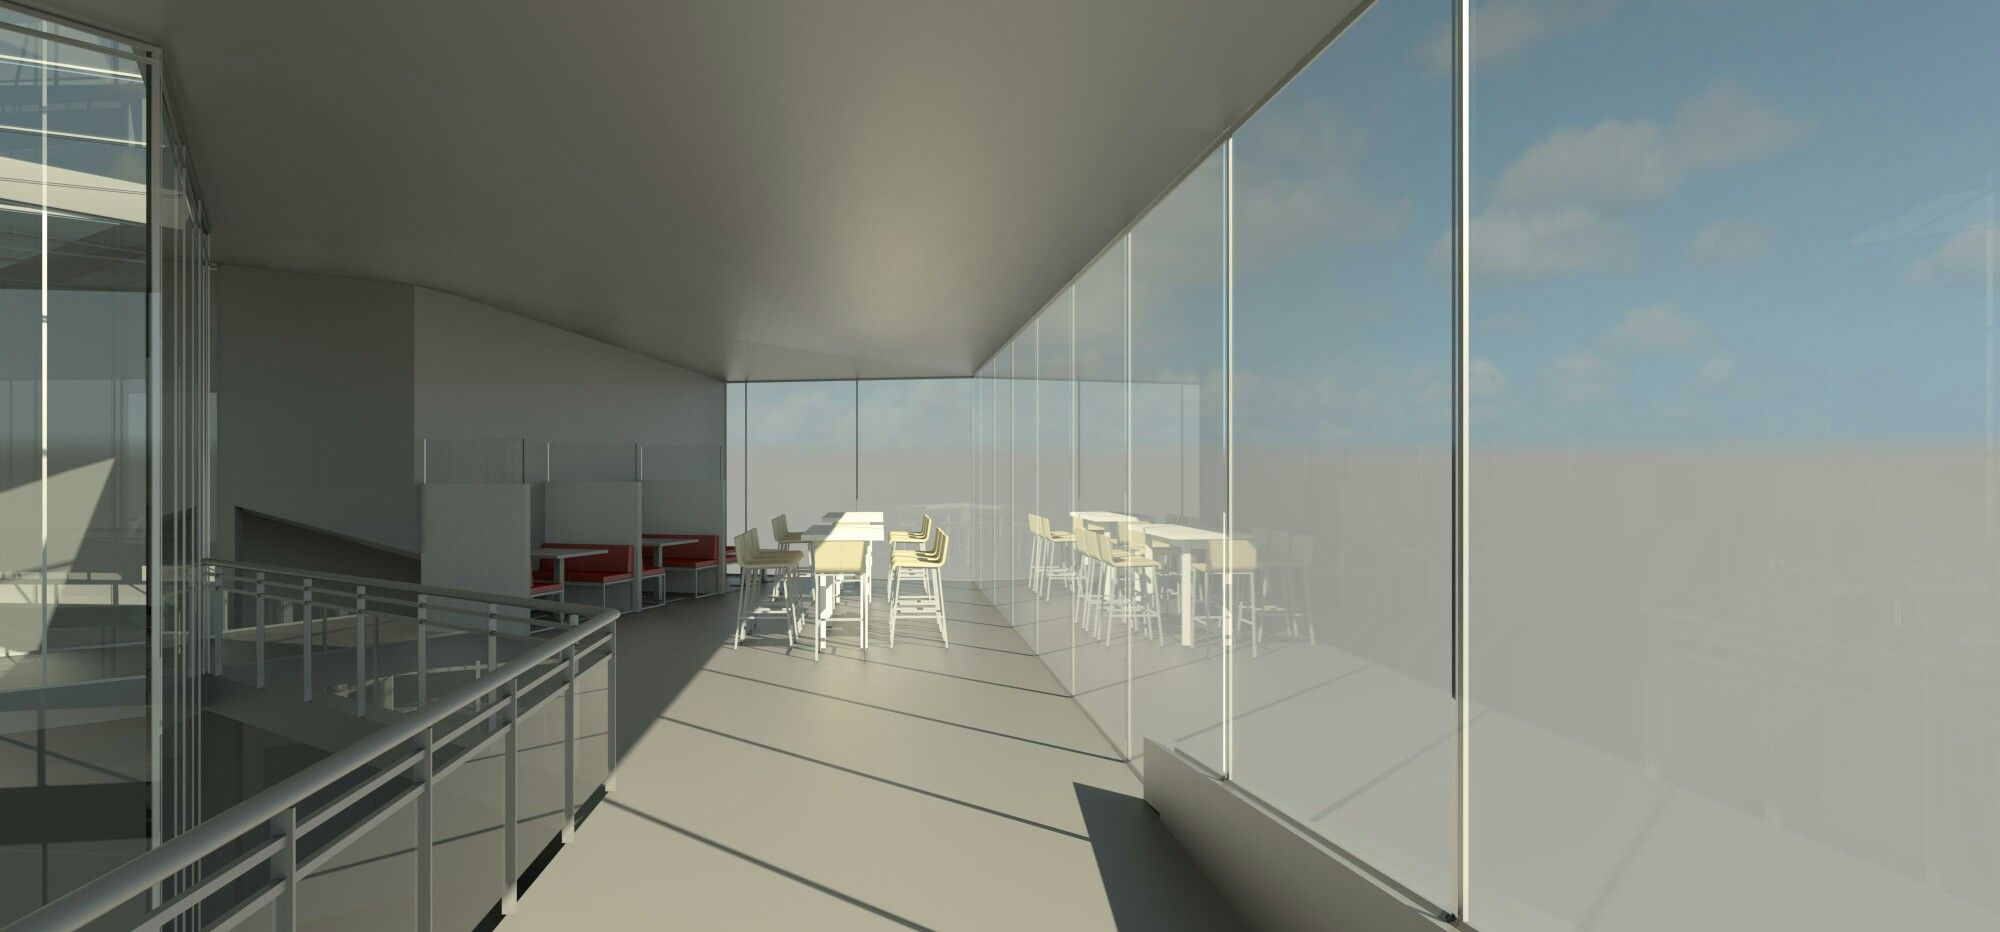 My Renderings: (Breakout Space) AFSF Design Competition 1st place best digital presentation